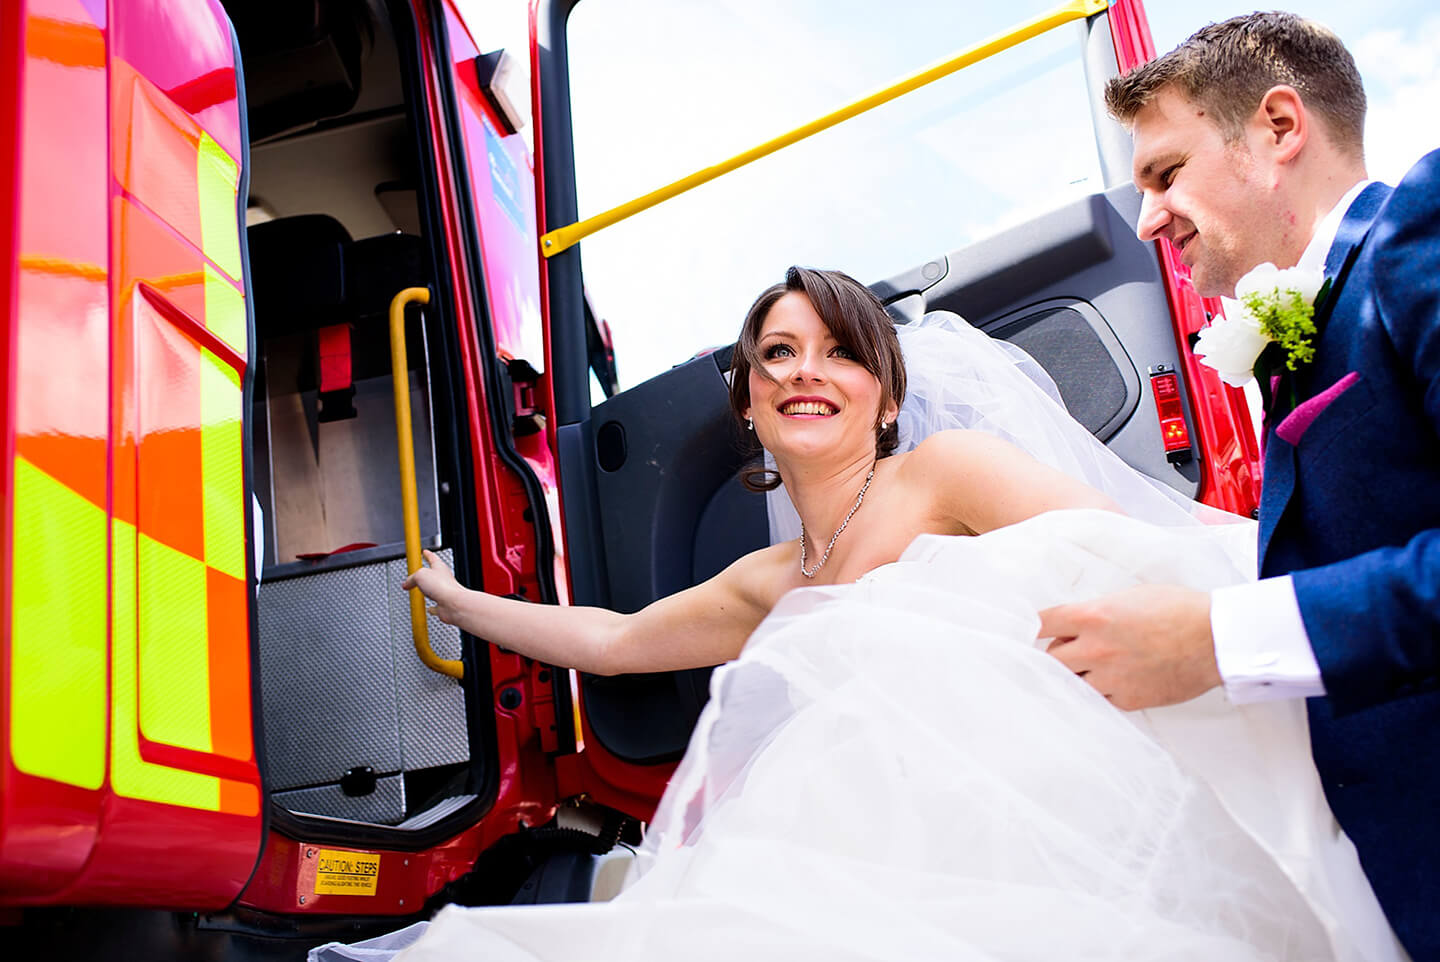 The bride and groom step into a fire engine as one of their modes of wedding transport – quirky wedding ideas